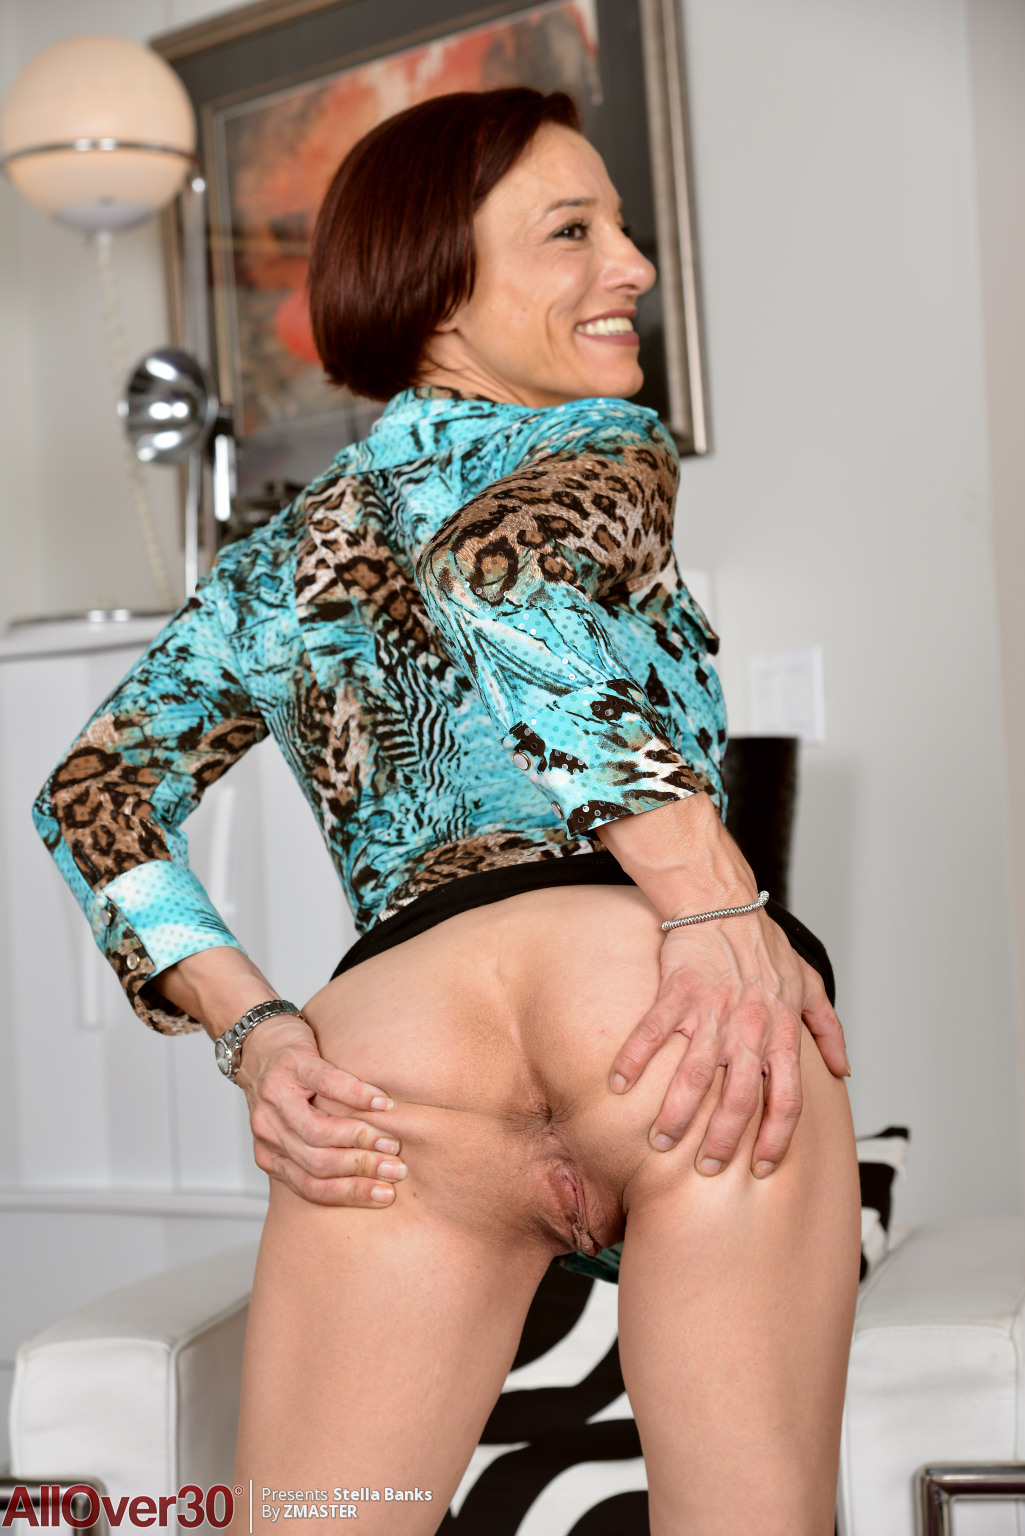 stella-banks-slender-mature-housewife-02